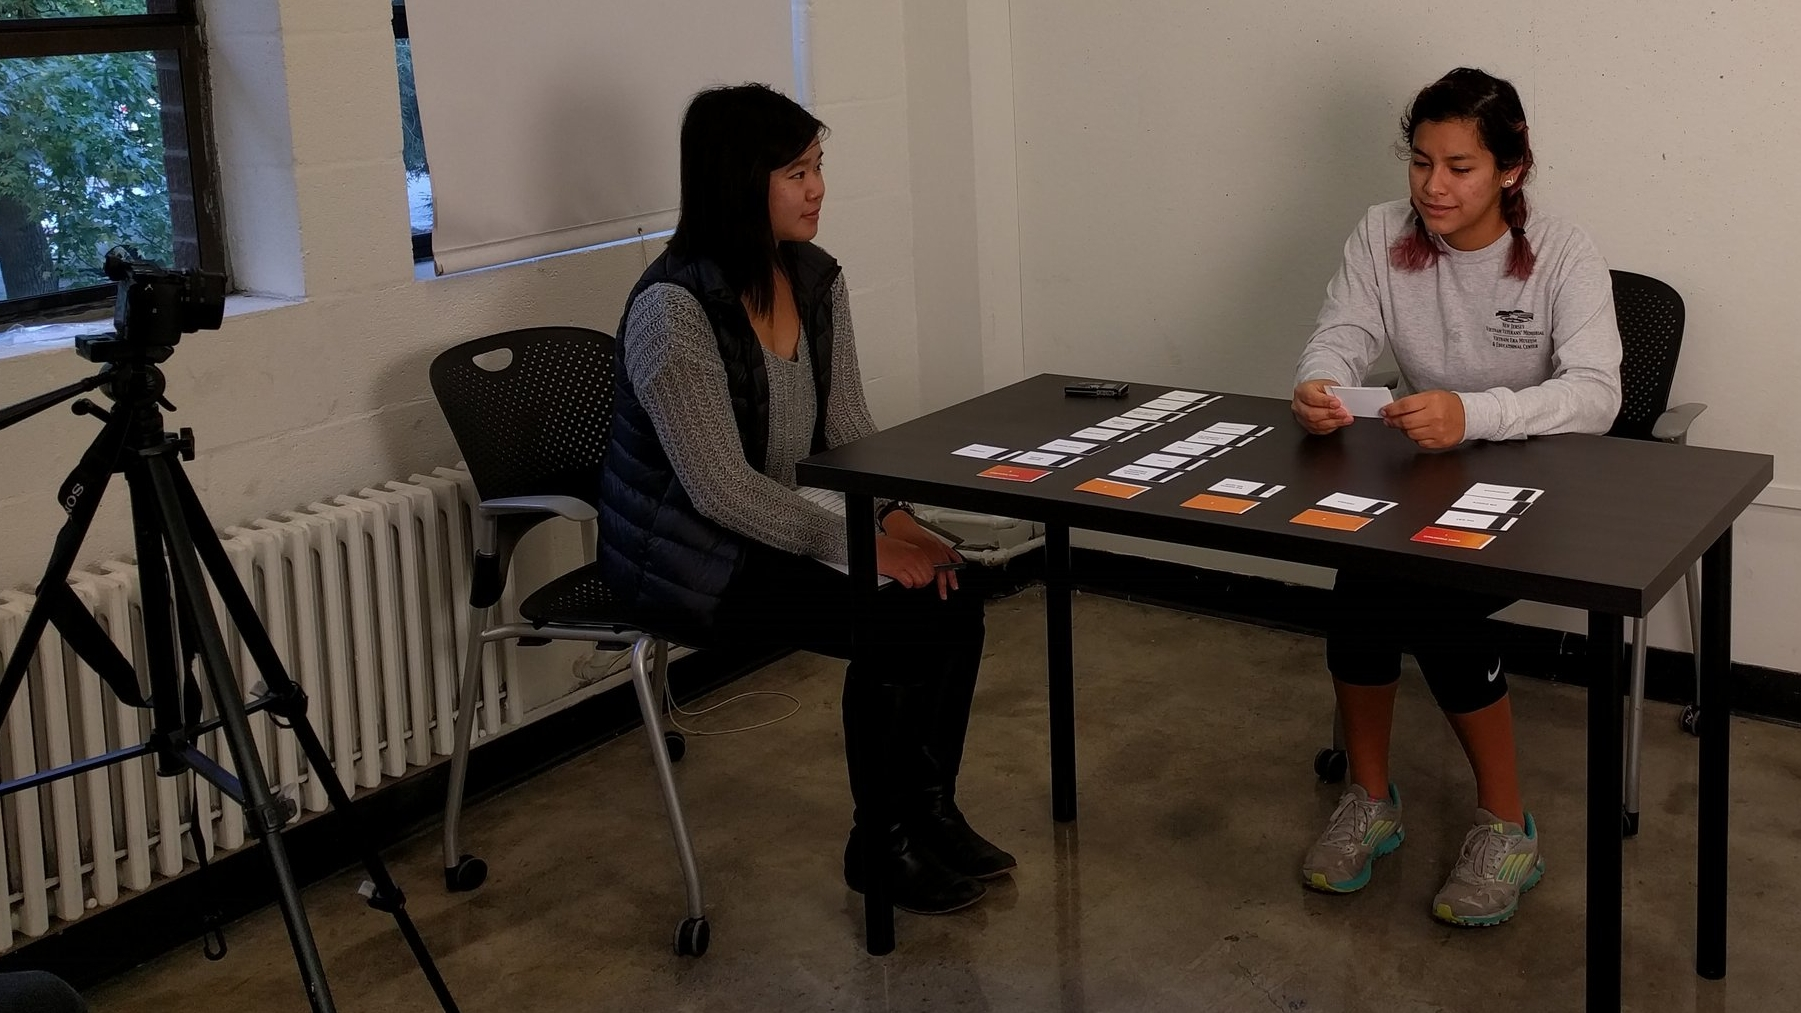 Conducting a user research interview with a participant.